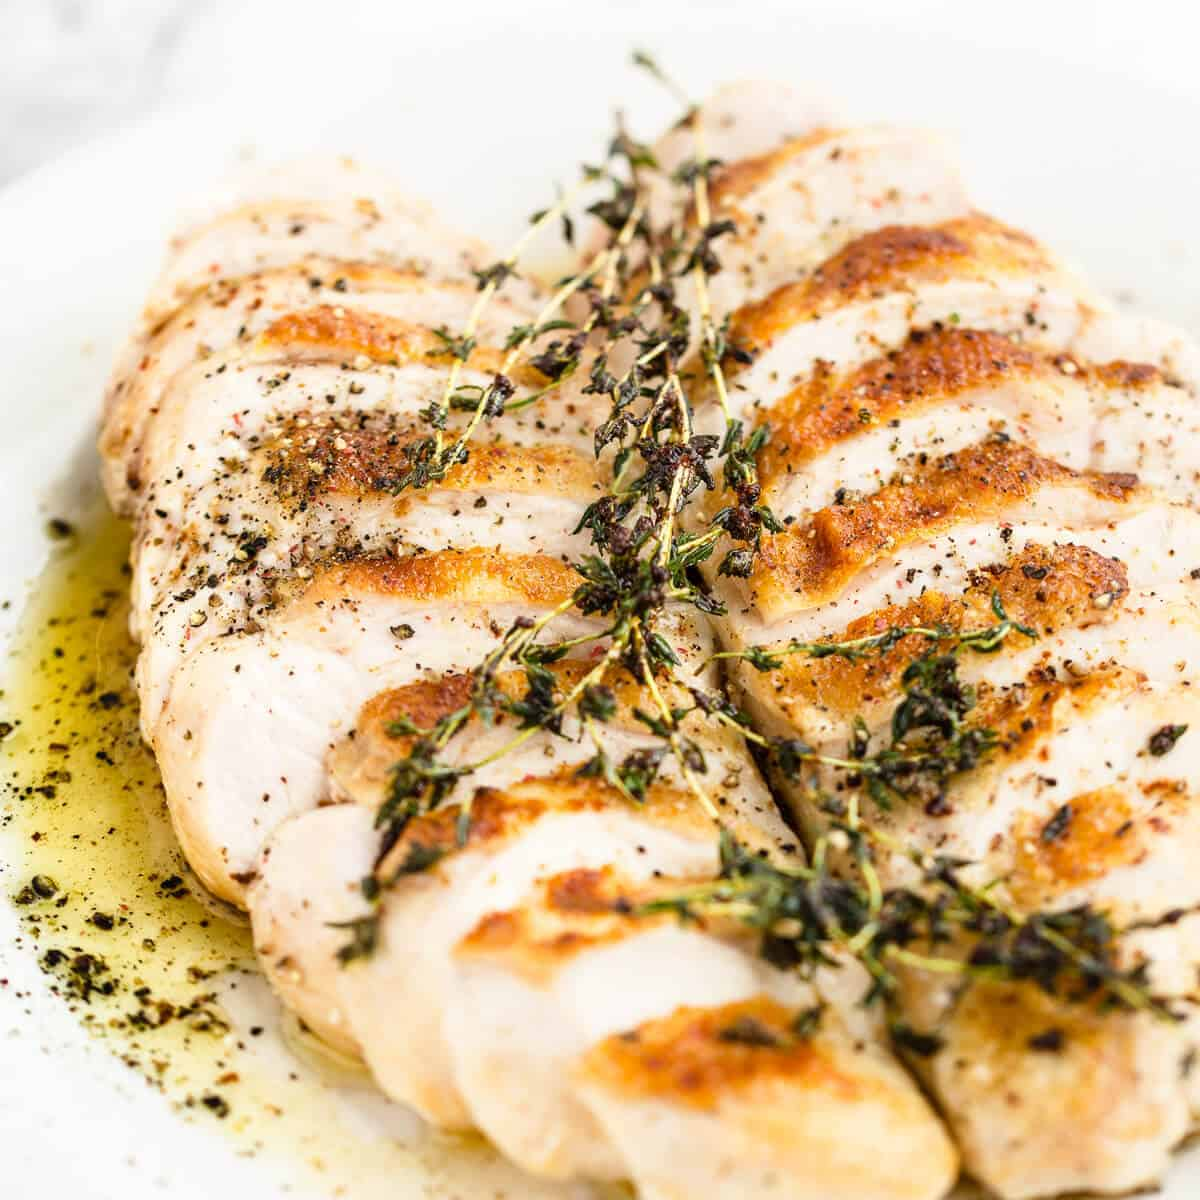 sliced oven roasted chicken breast with thyme butter on a white plate